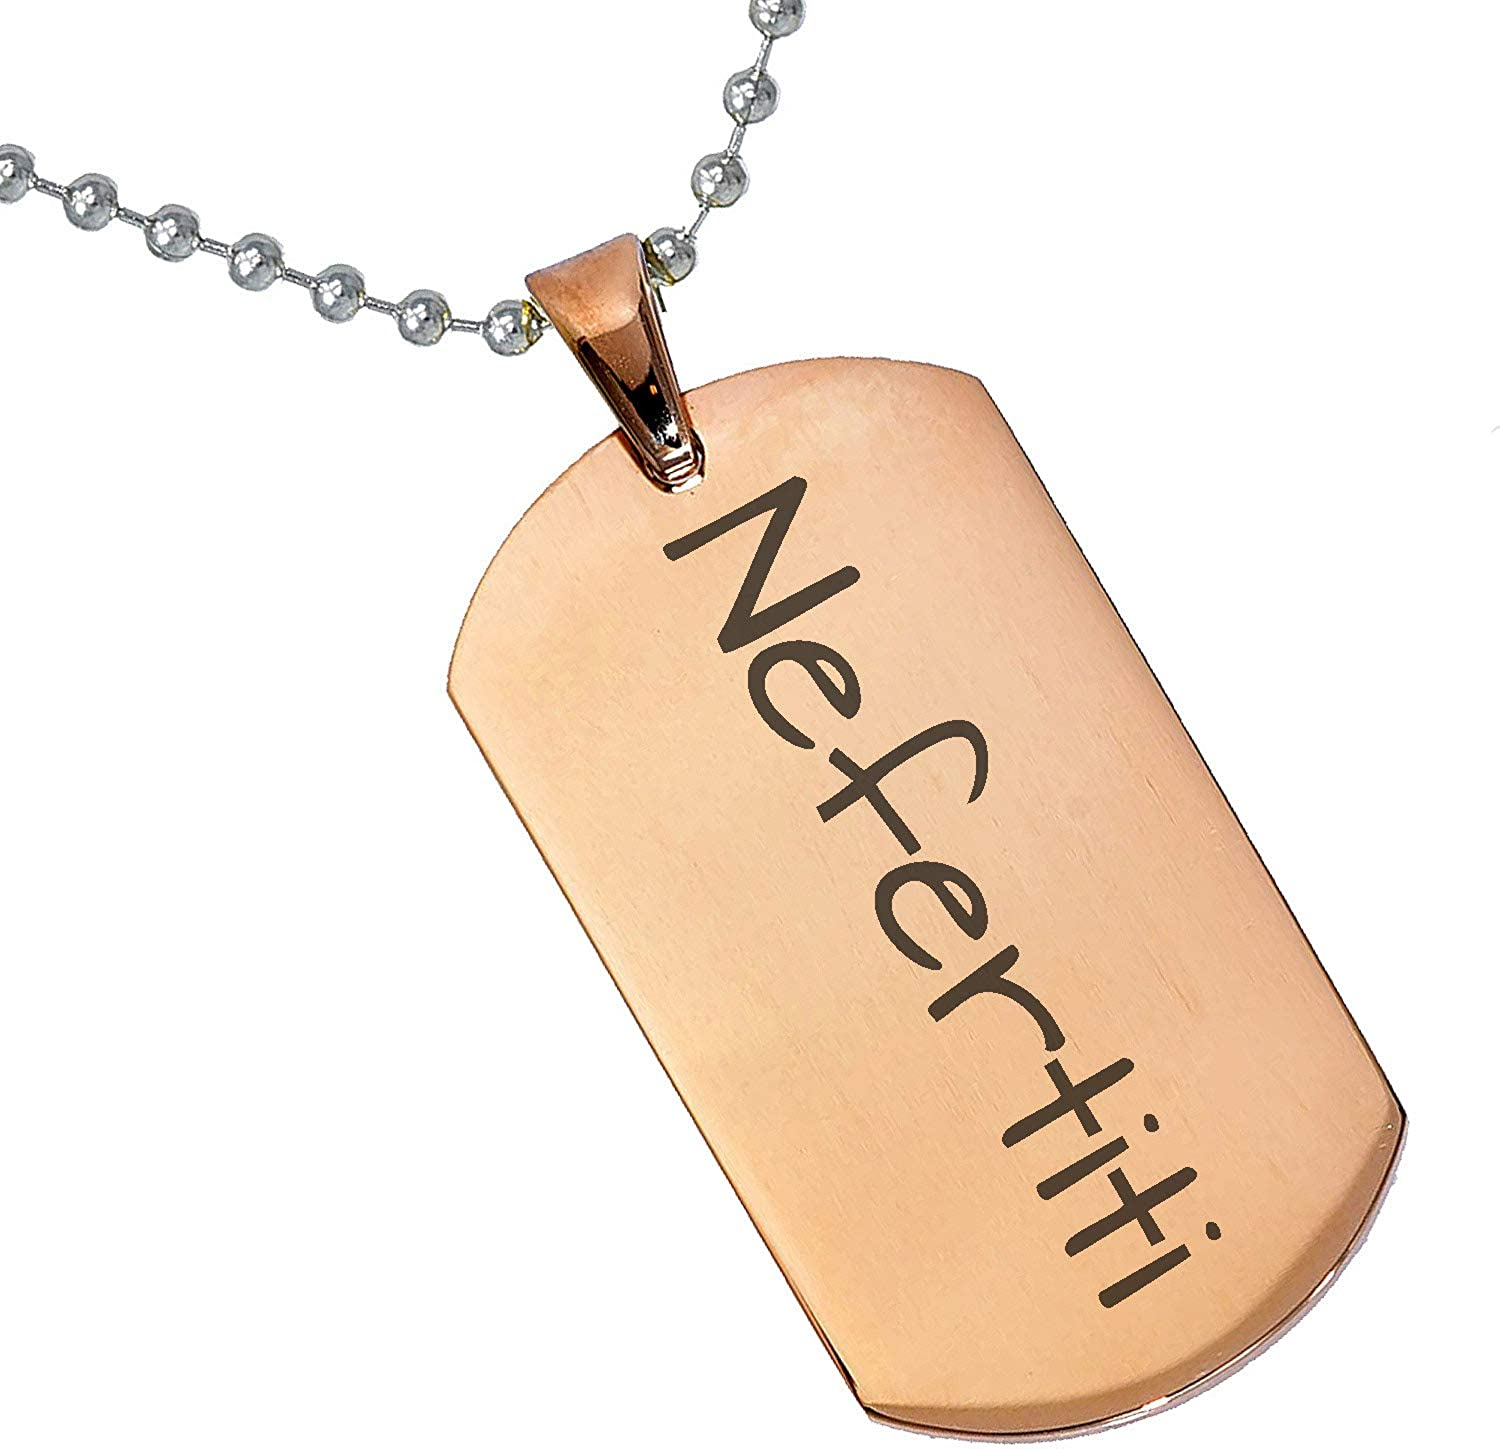 Stainless Steel Silver Gold Black Rose Gold Color Baby Name Nefertiti Engraved Personalized Gifts For Son Daughter Boyfriend Girlfriend Initial Customizable Pendant Necklace Dog Tags 24 Ball Chain